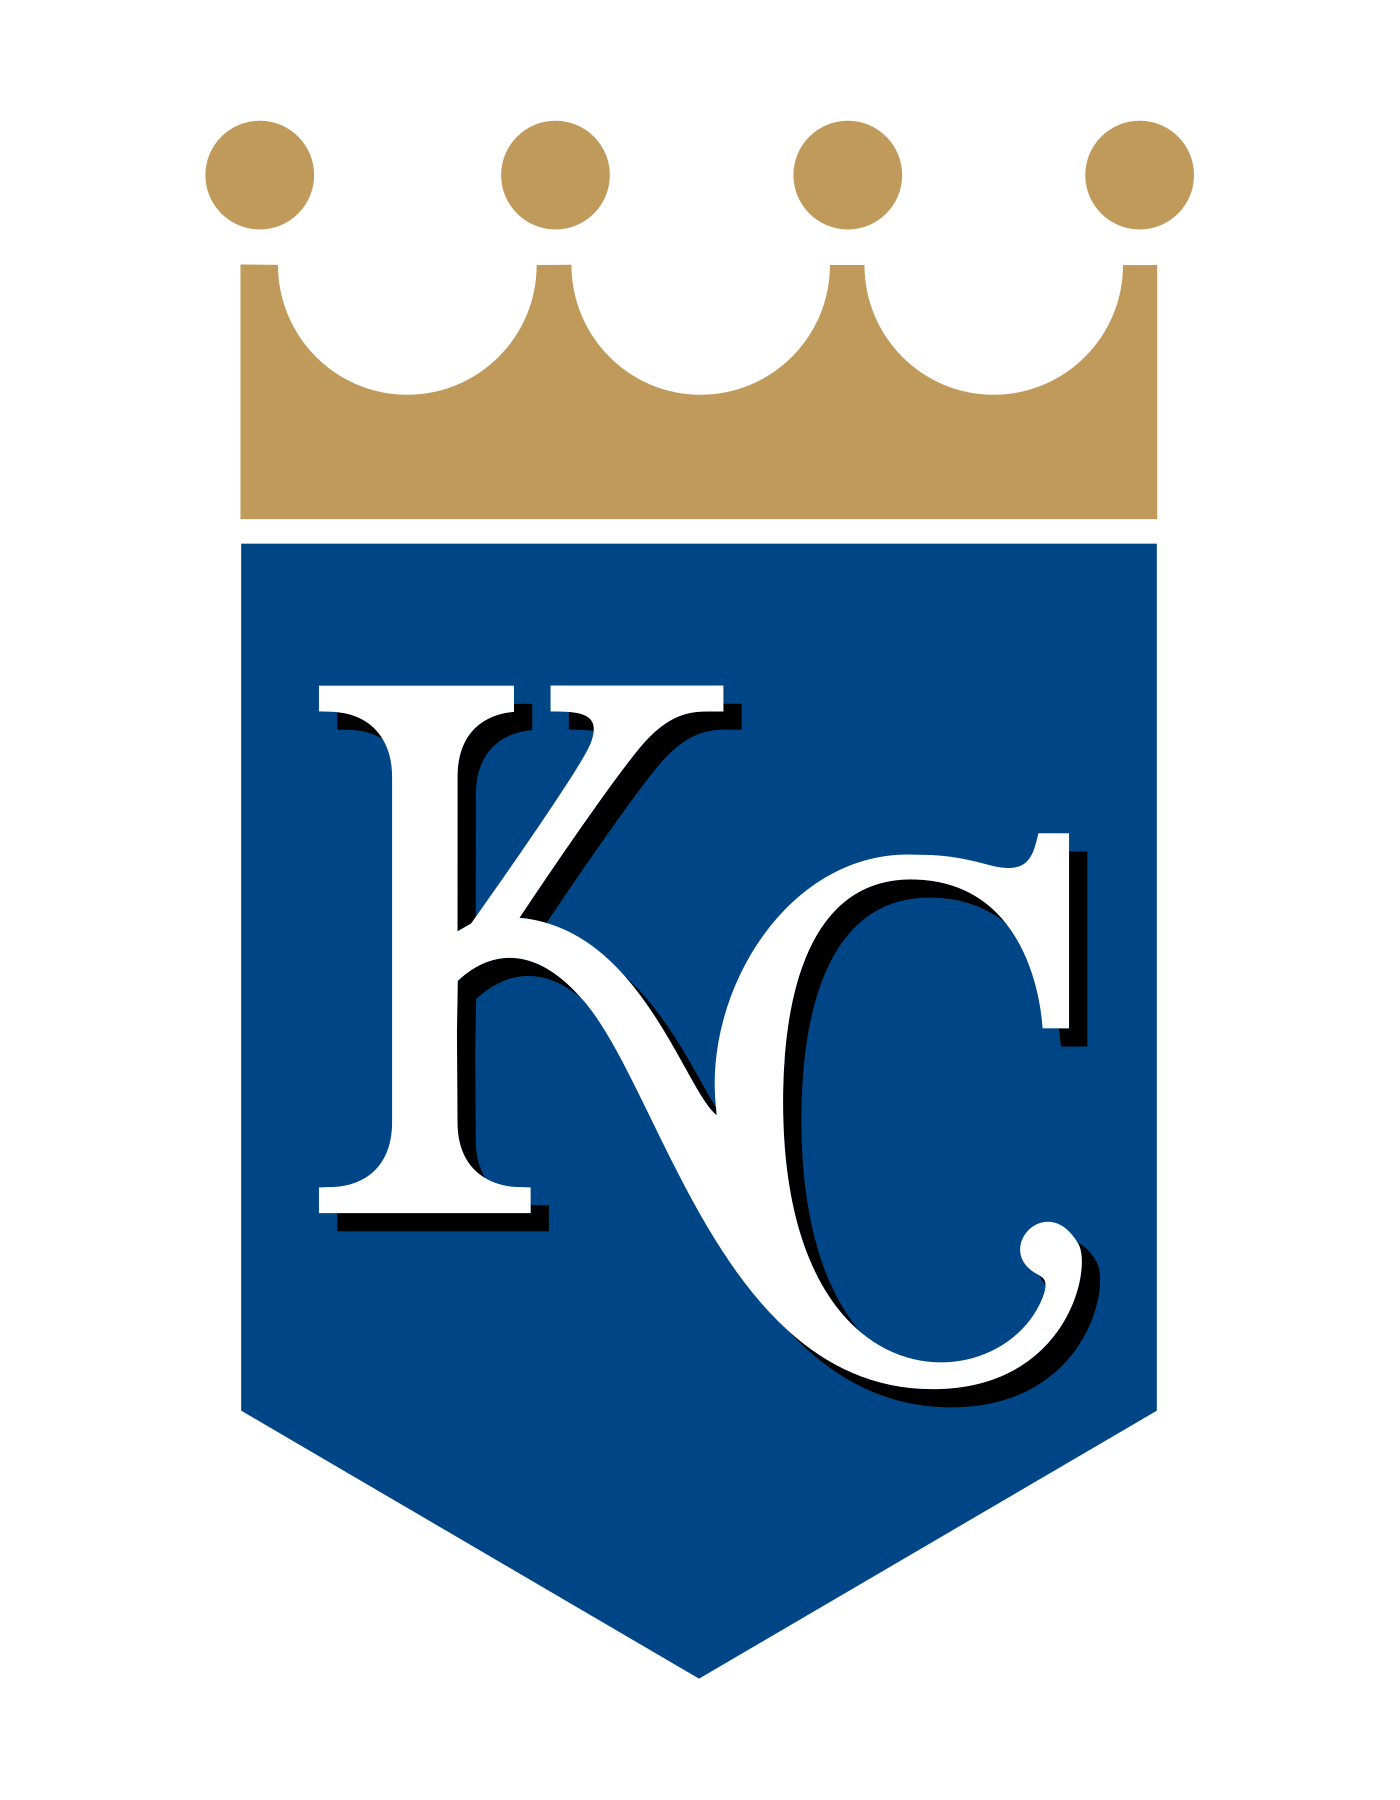 Kansas city royals crown logo clipart png library stock Kansas City Royals Logo PNG Transparent & SVG Vector - Freebie Supply png library stock